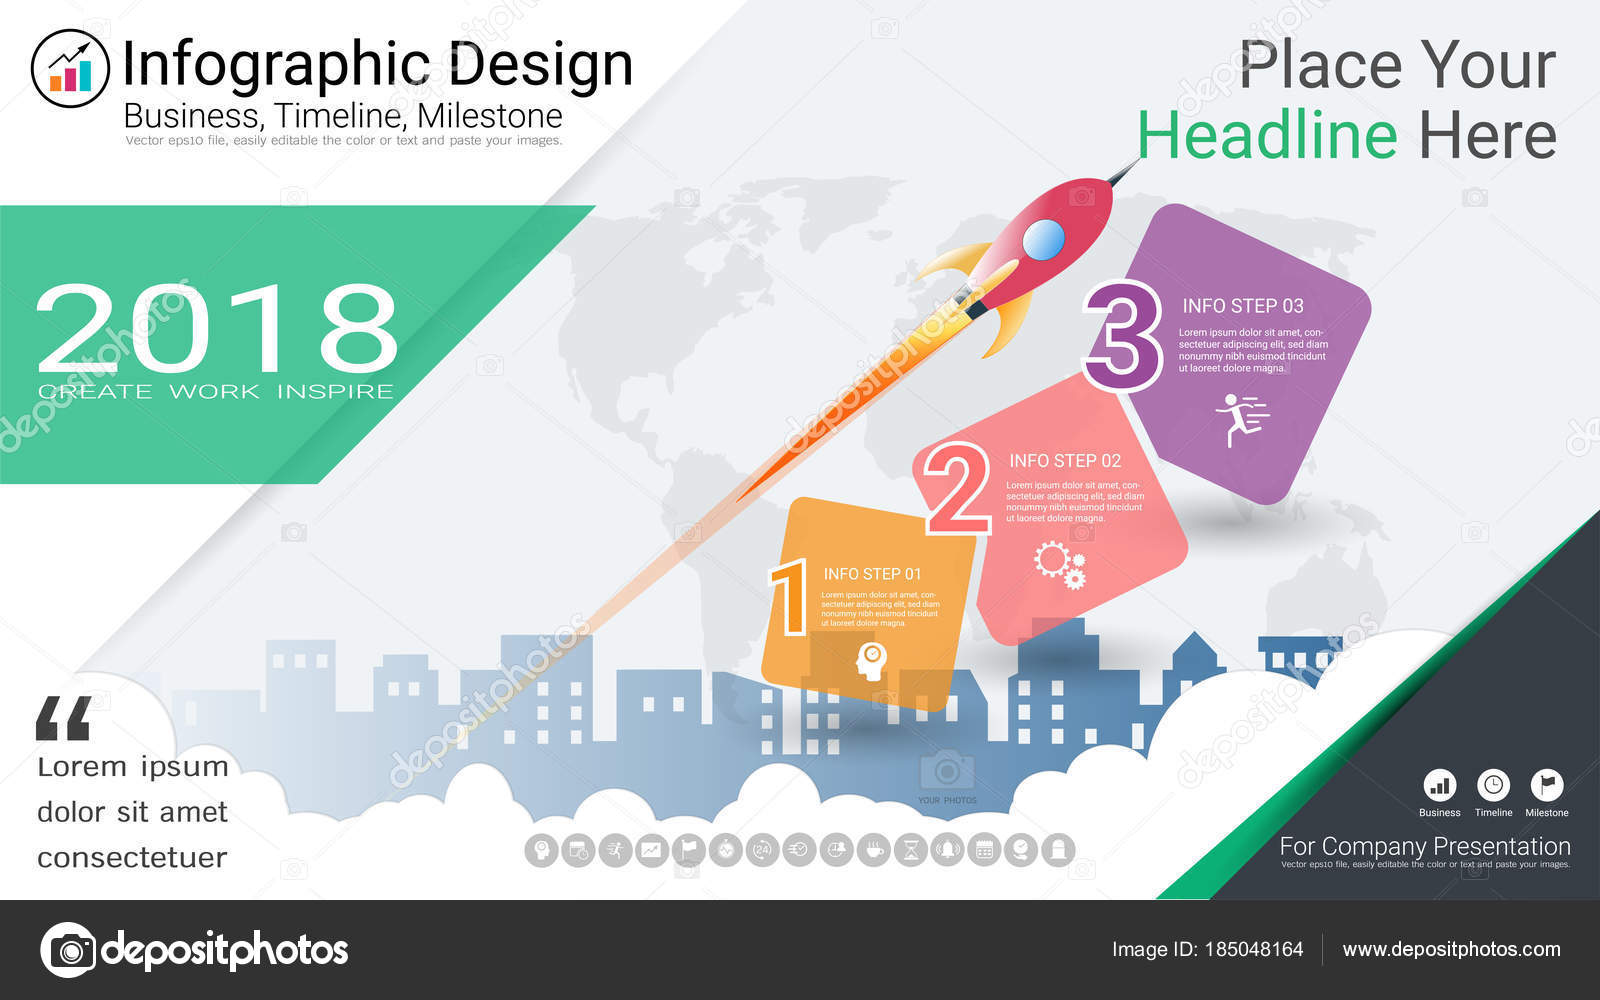 Business Infographics Template Milestone Timeline Road Map Process Flow Diagram Infographic For Powerpoint Flowchart Options Stock Vector